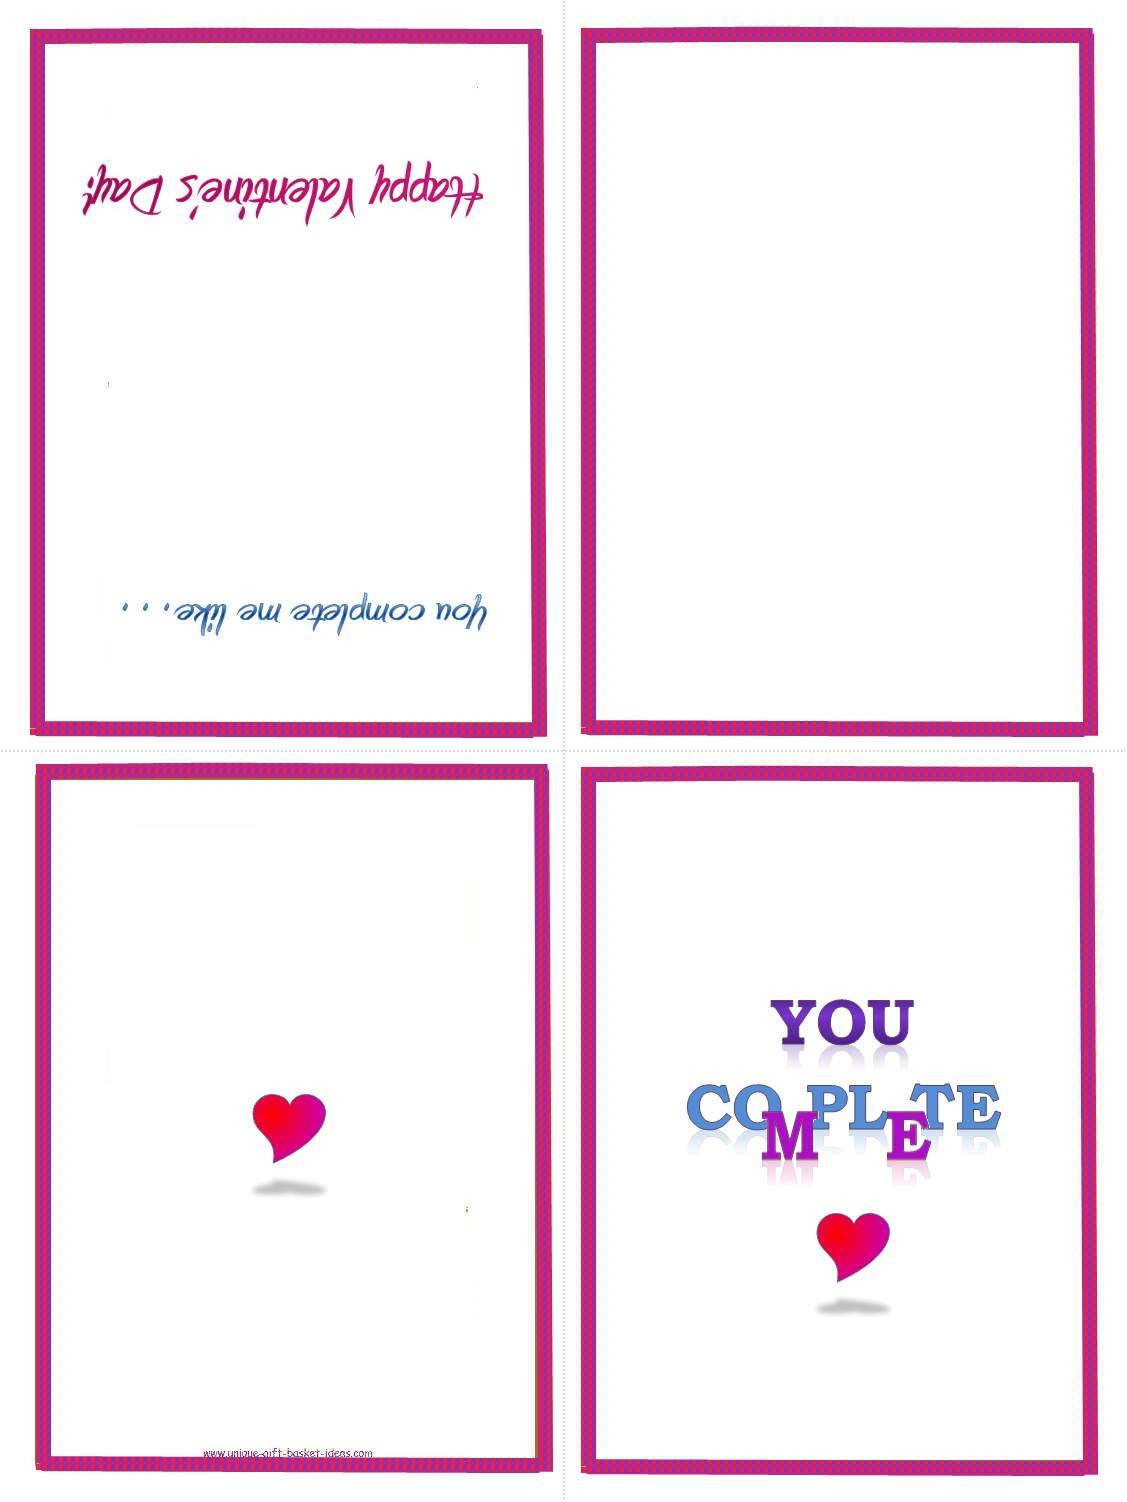 Printable Greetings Cards Templates Easy Homemade Gift Ideas Free Printable Gifts